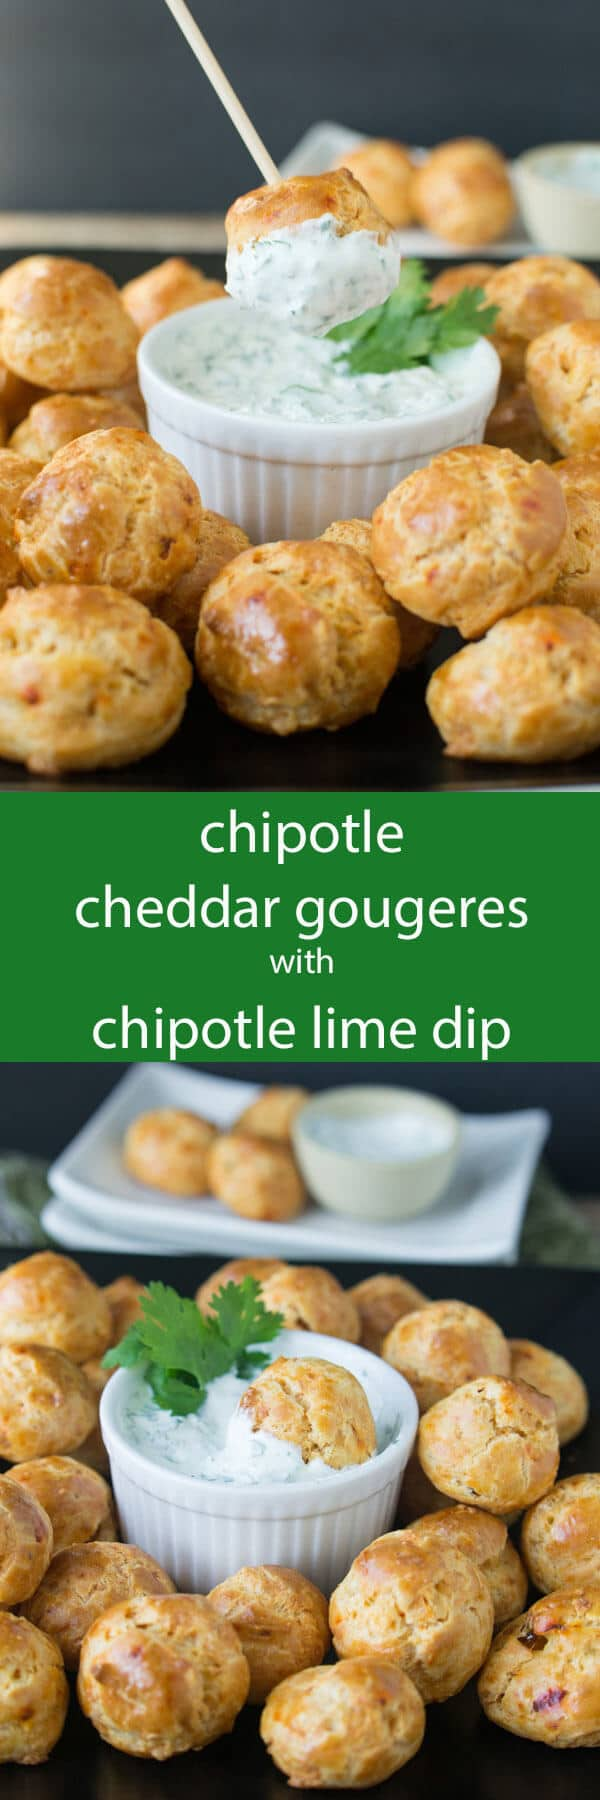 Crispy chipotle cheddar gougeres puffs flavored with chipotle and cheddar served with a cool cilantro lime dip. A great party appetizer!